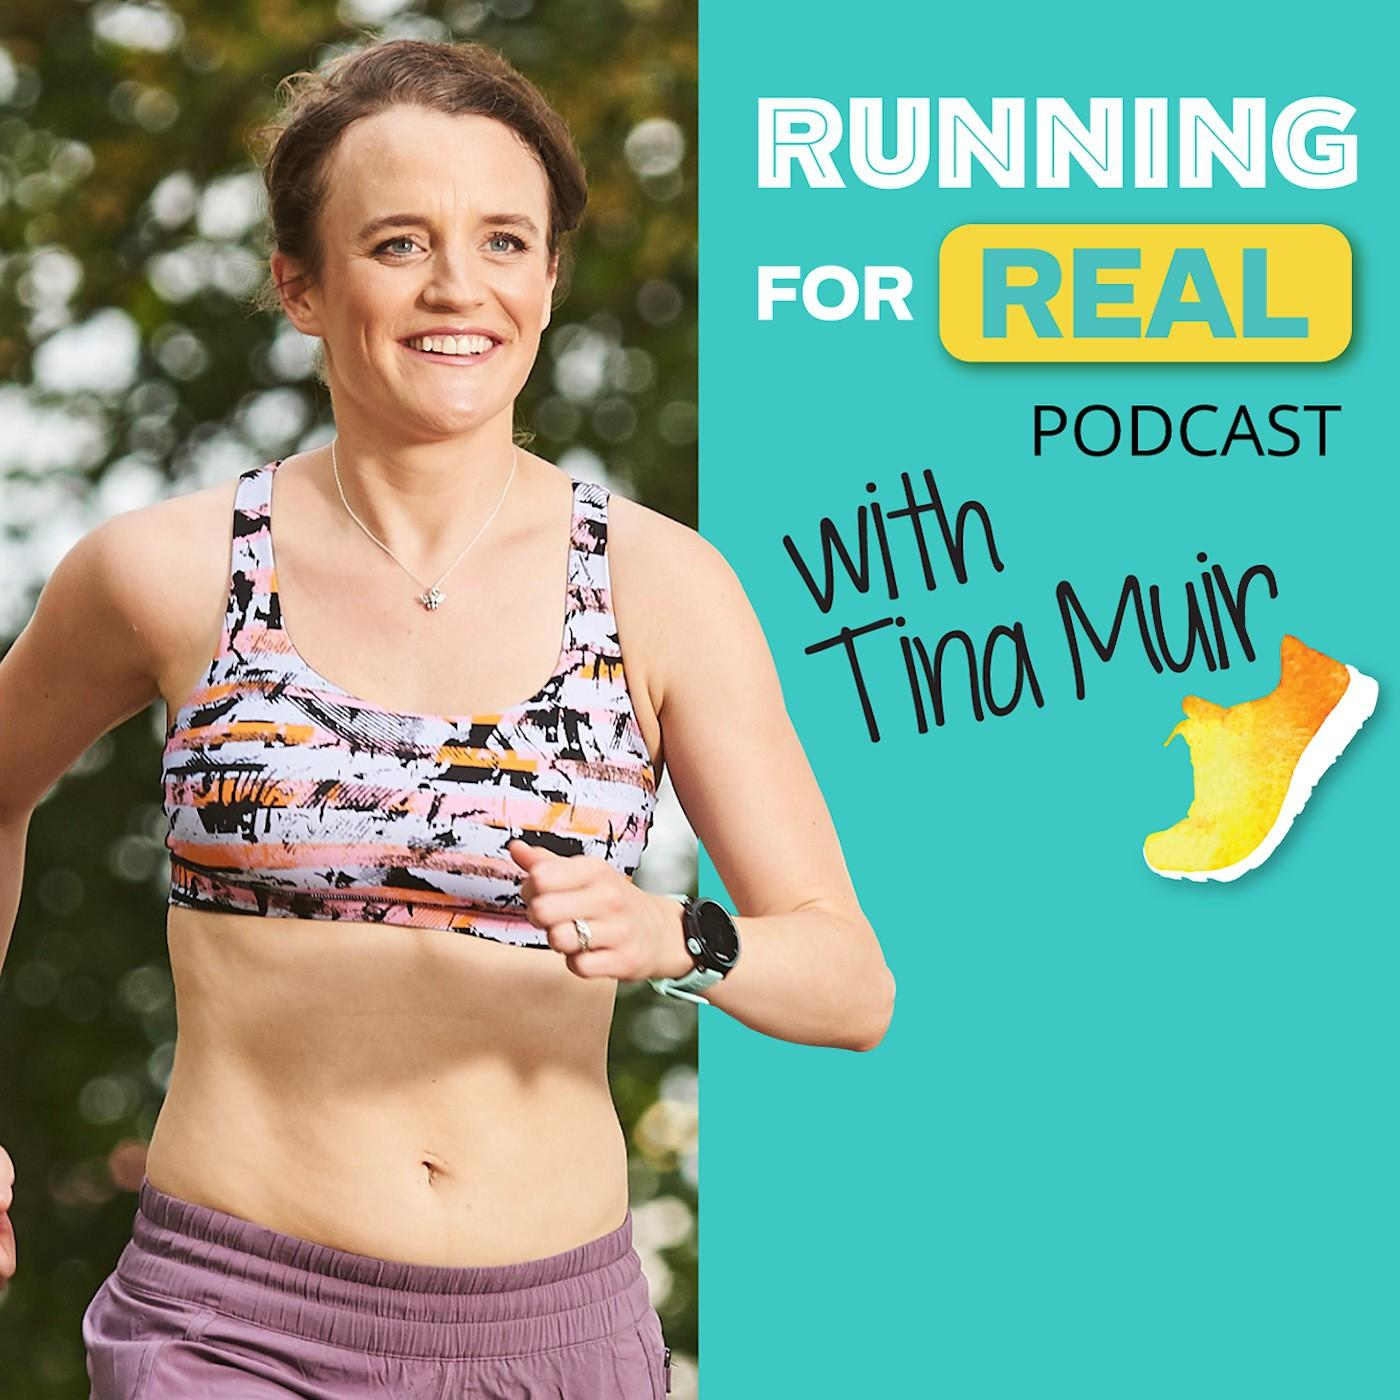 Margo Mountjoy: There's Always A Healthy Way To Reach Your Goals -R4R 177